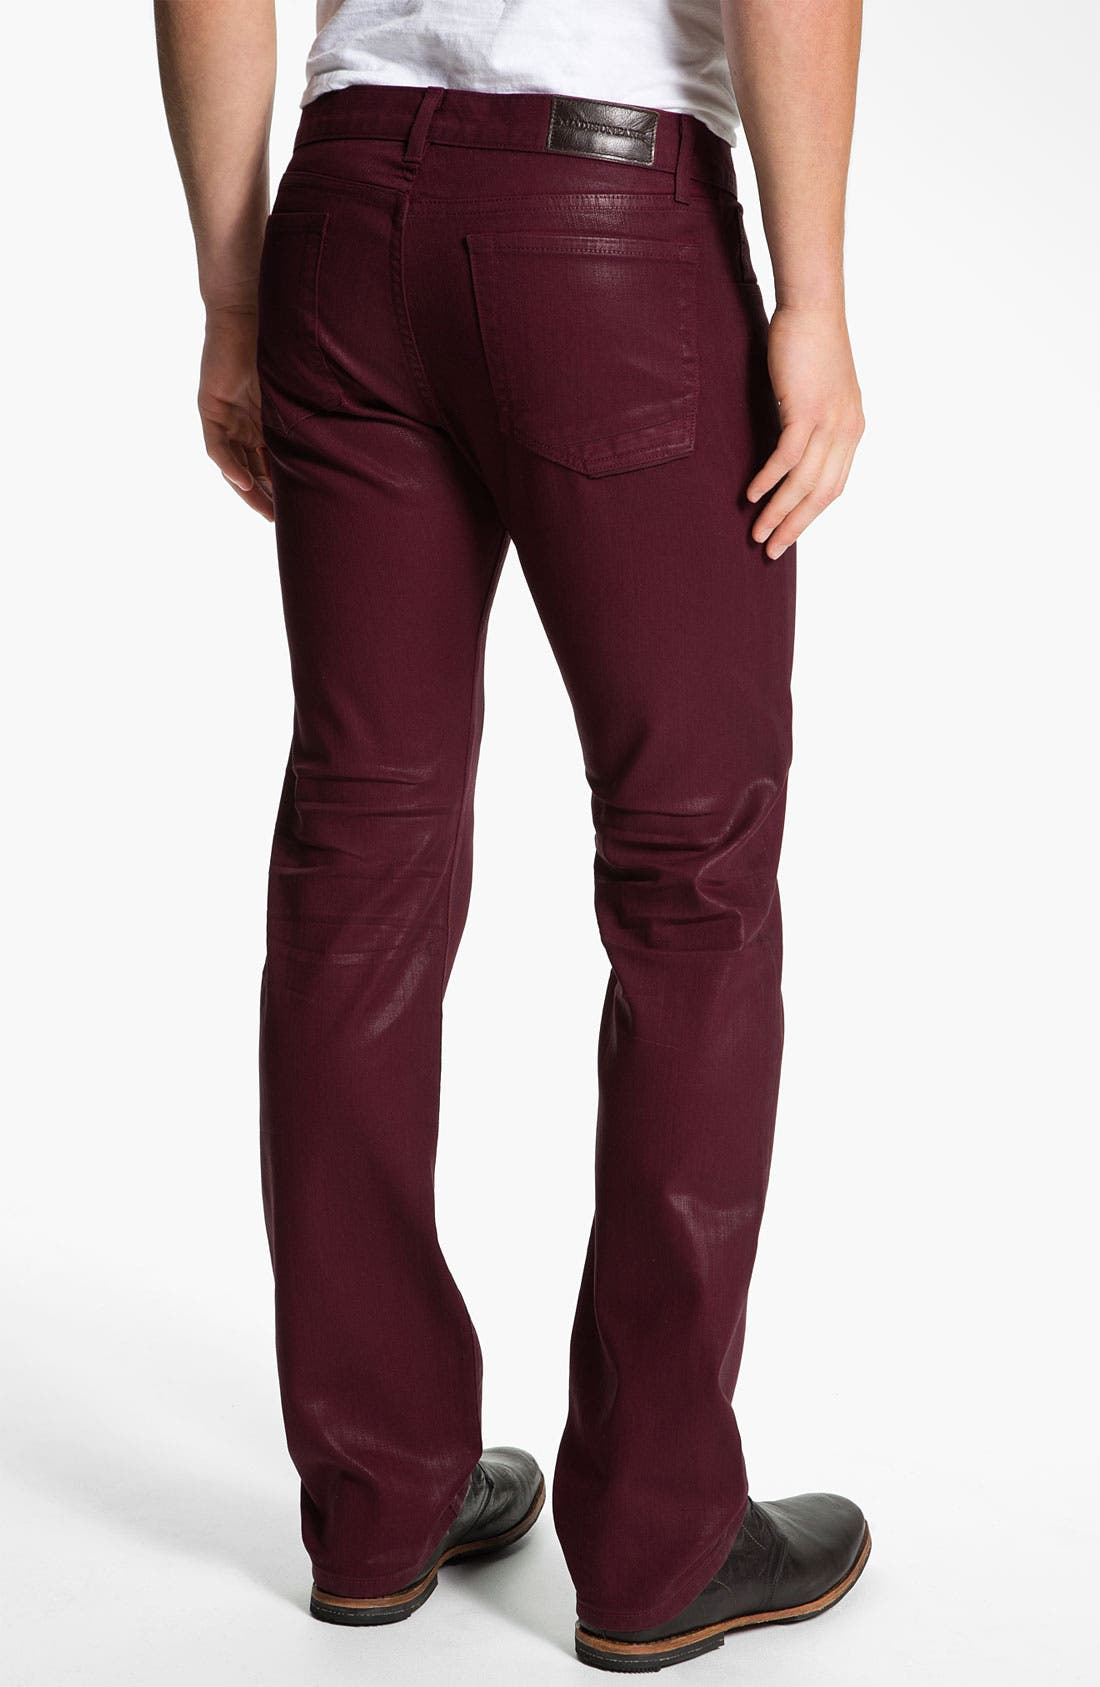 Alternate Image 1 Selected - Madisonpark Collective 'Miles' Slim Straight Leg Jeans (Merlot)